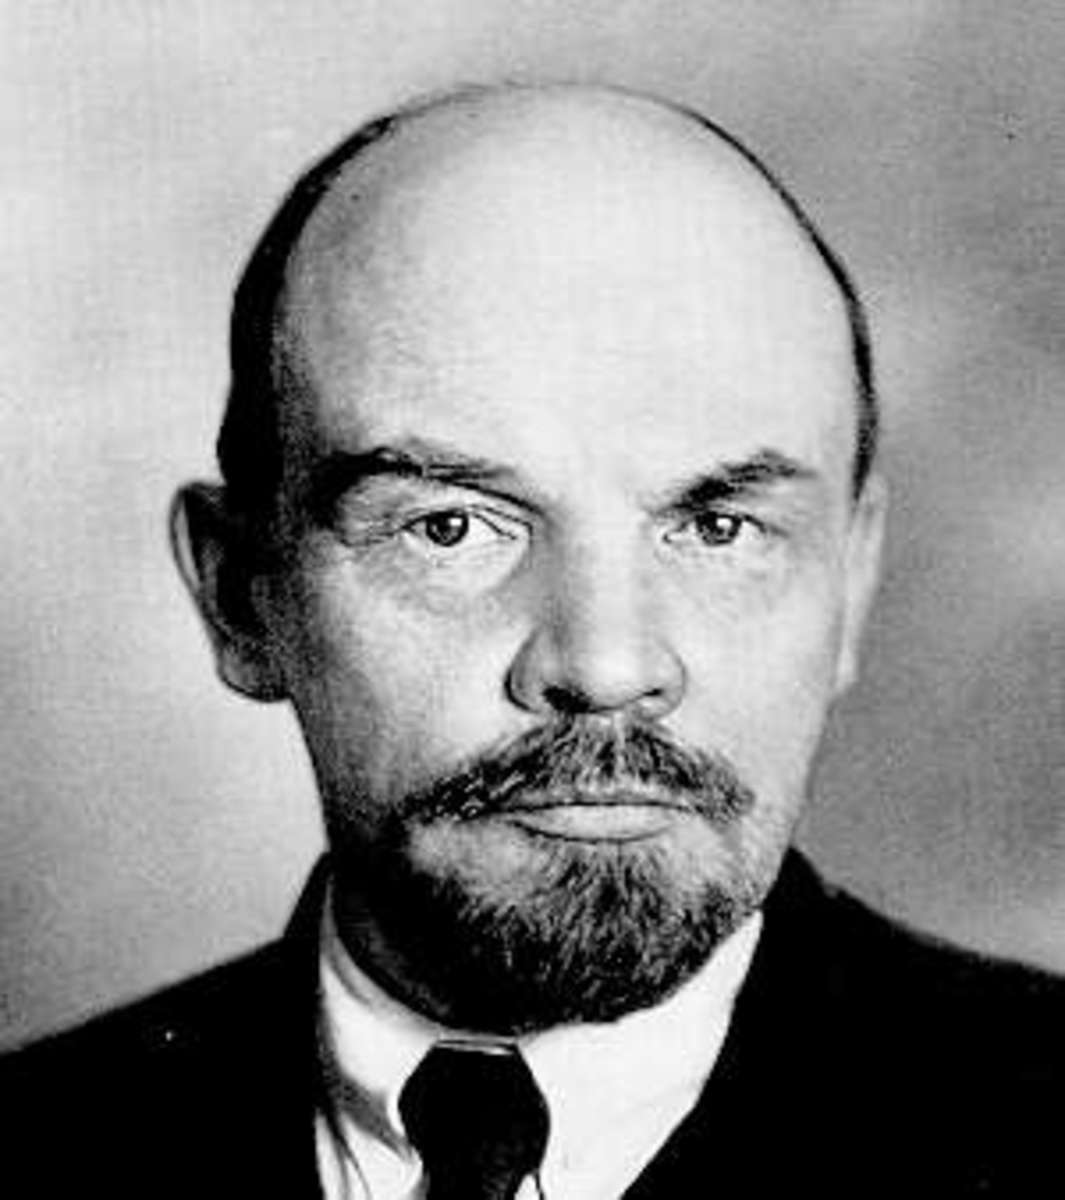 pragmatism and ideology soviet foreign policy under lenin hubpages